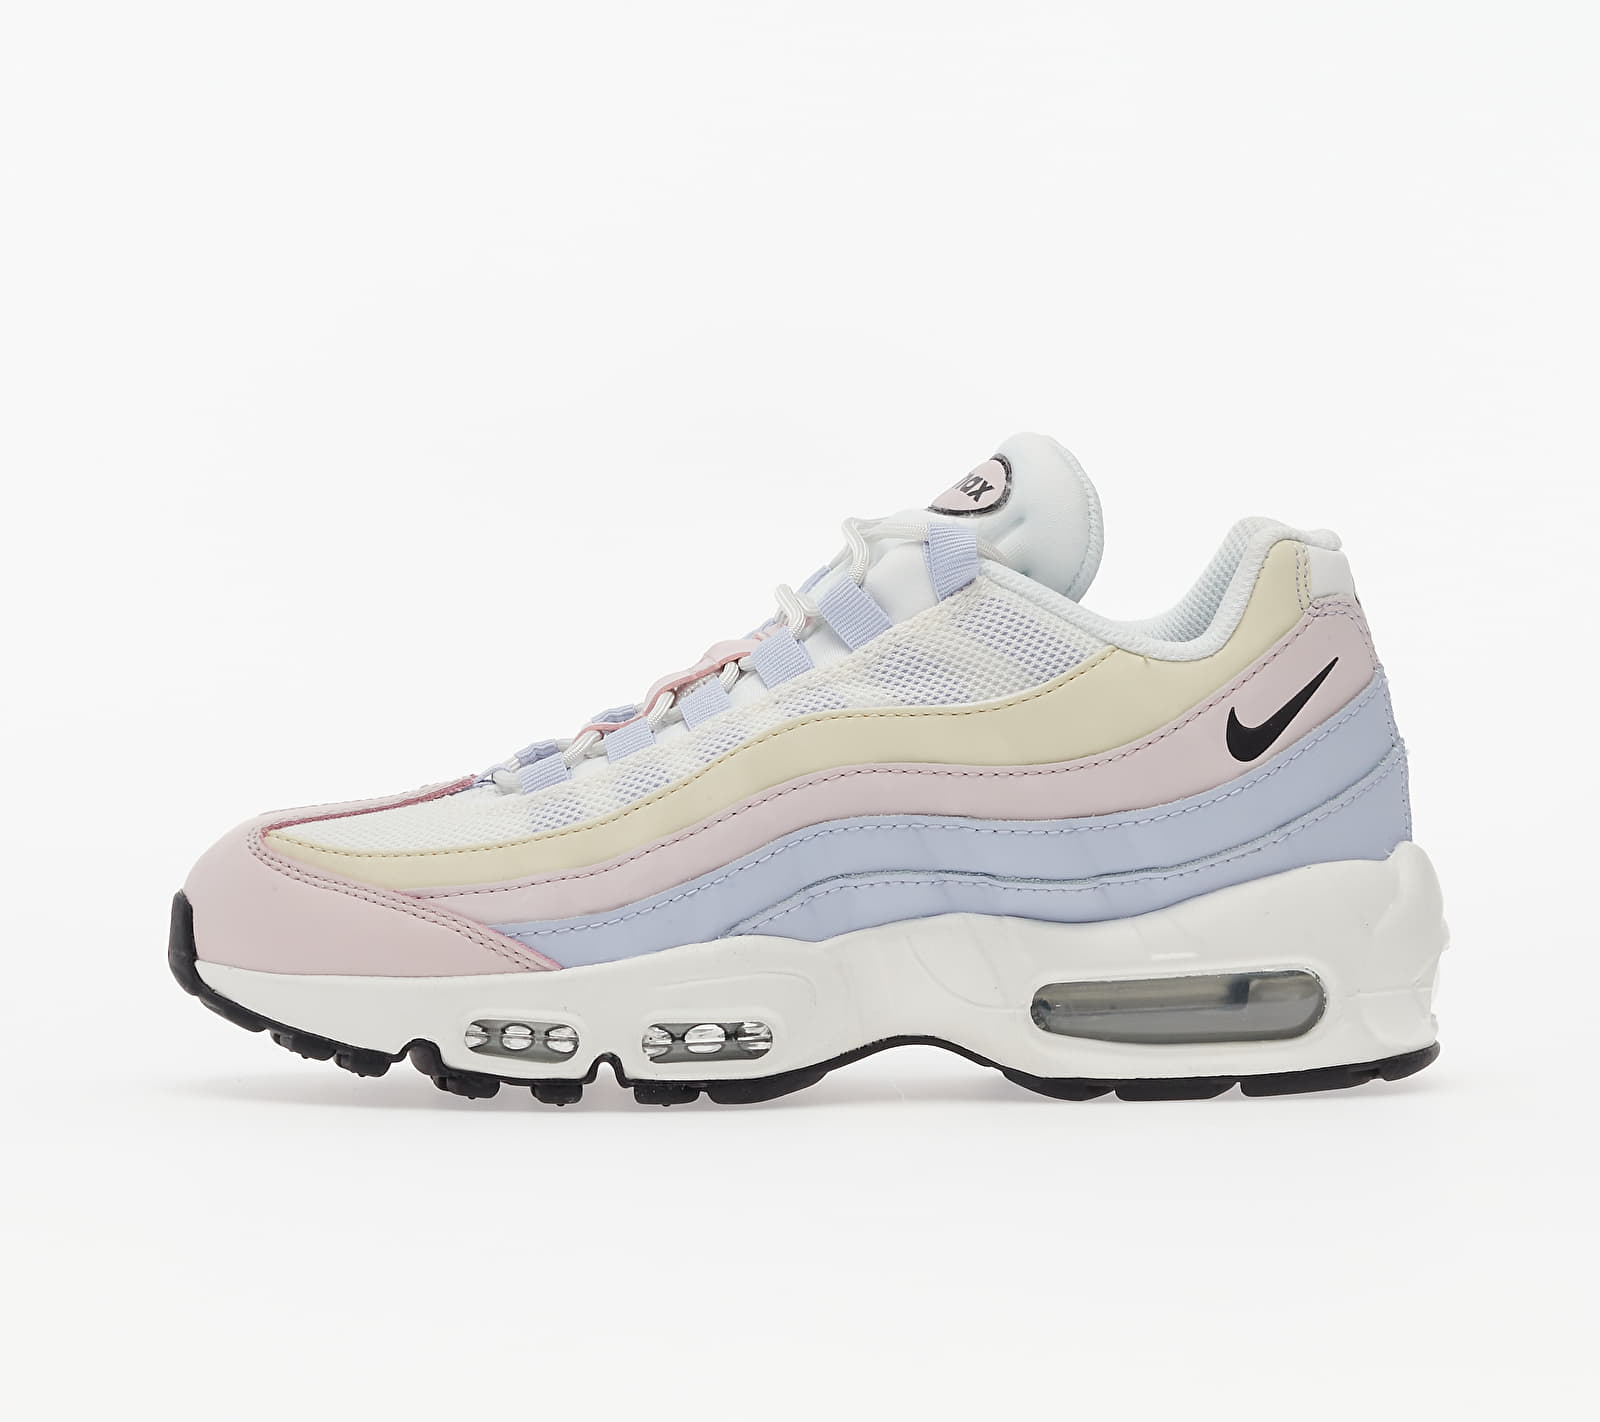 Nike Air Max 95 Ghost/ Black-Summit White-Barely Rose EUR 41